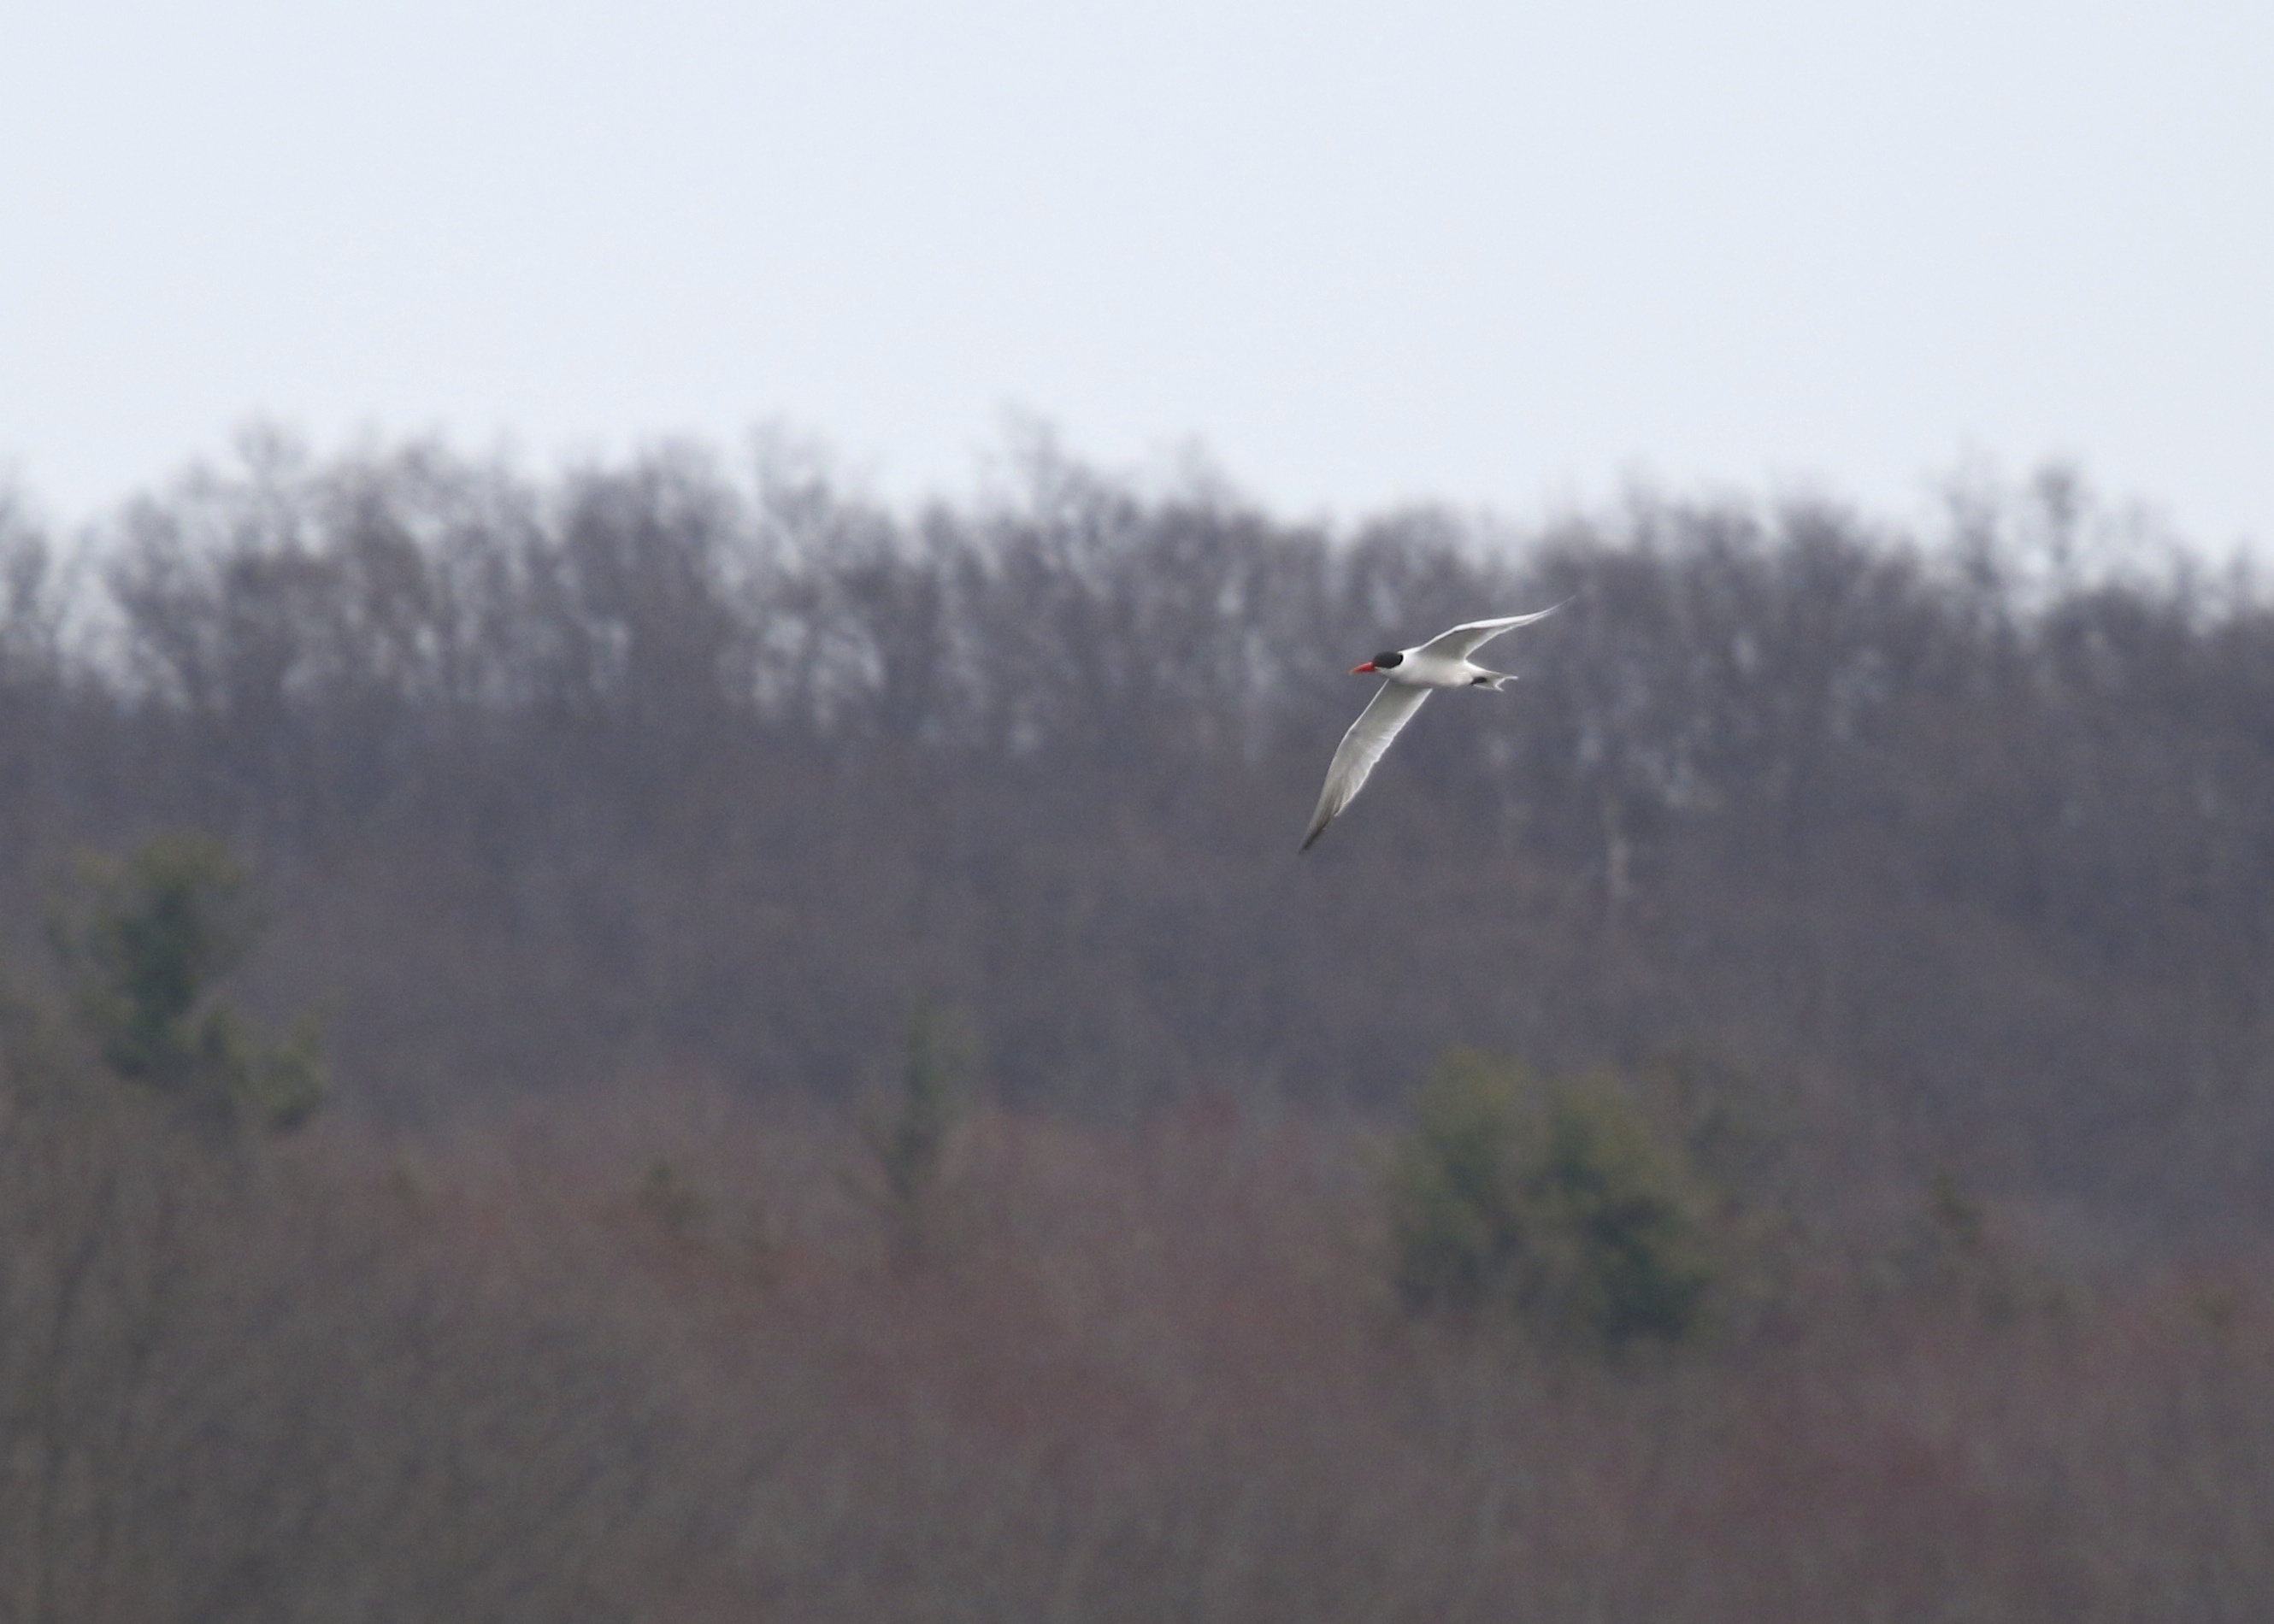 Caspian Tern at Glenmere Lake, 4/3/14.